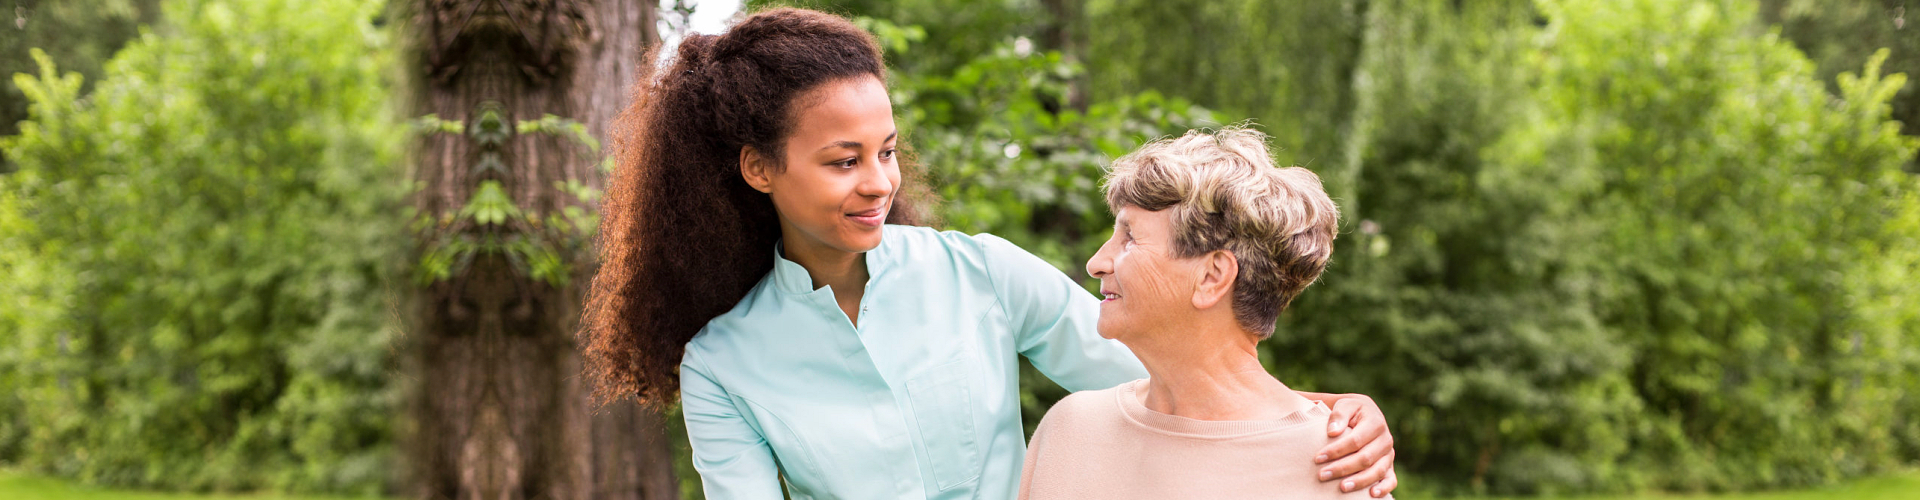 caregiver and senior woman smiling outdoor